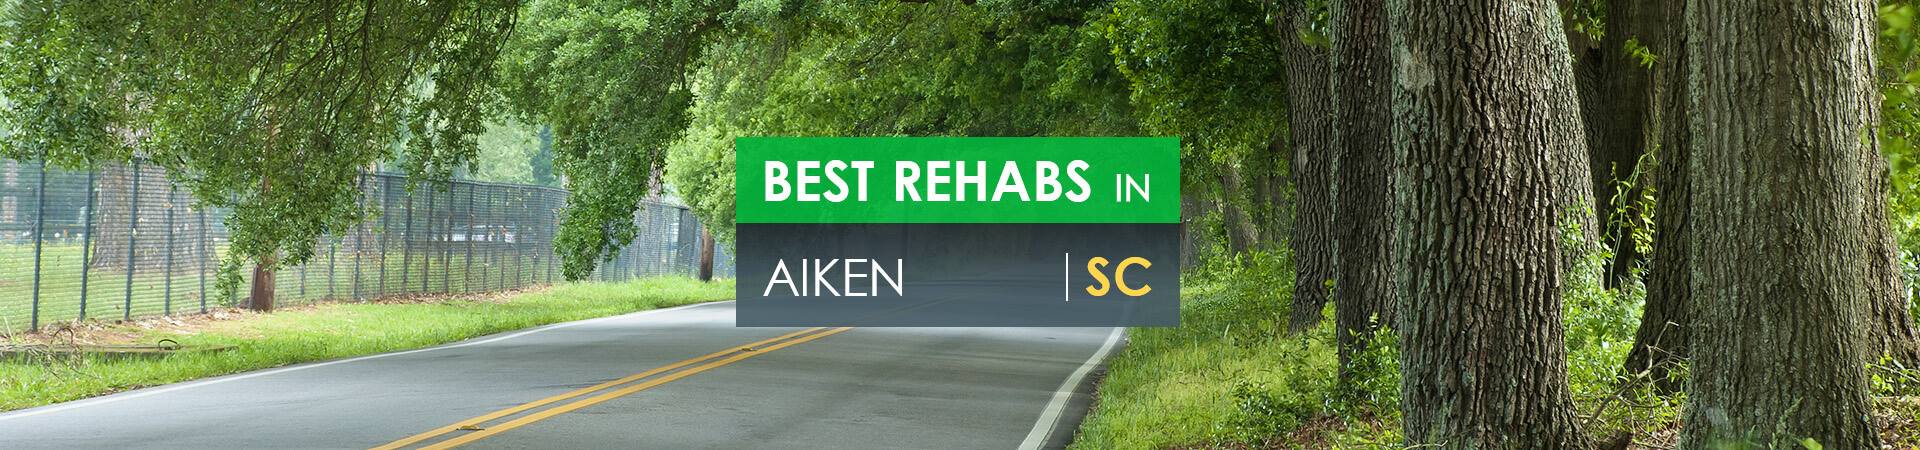 Best rehabs in Aiken, SC